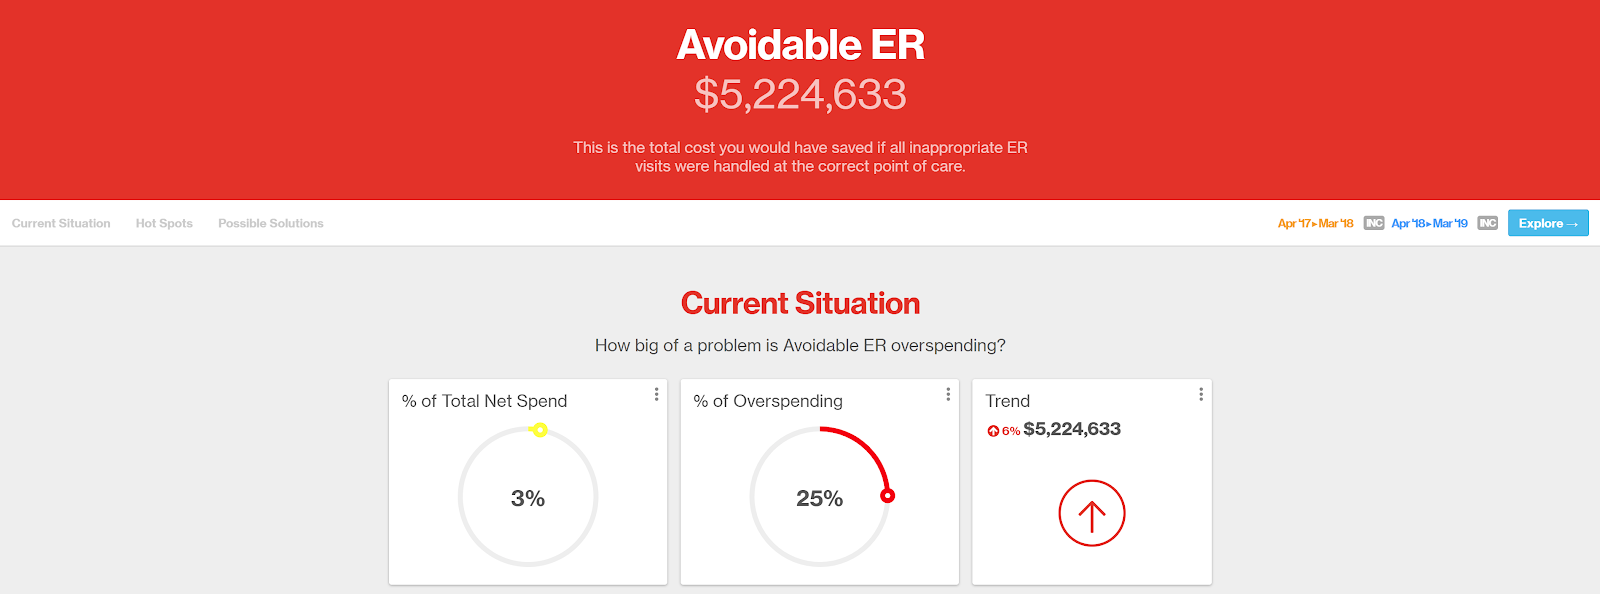 Charts from Artemis Platform showing Avoidable ER costs and trends